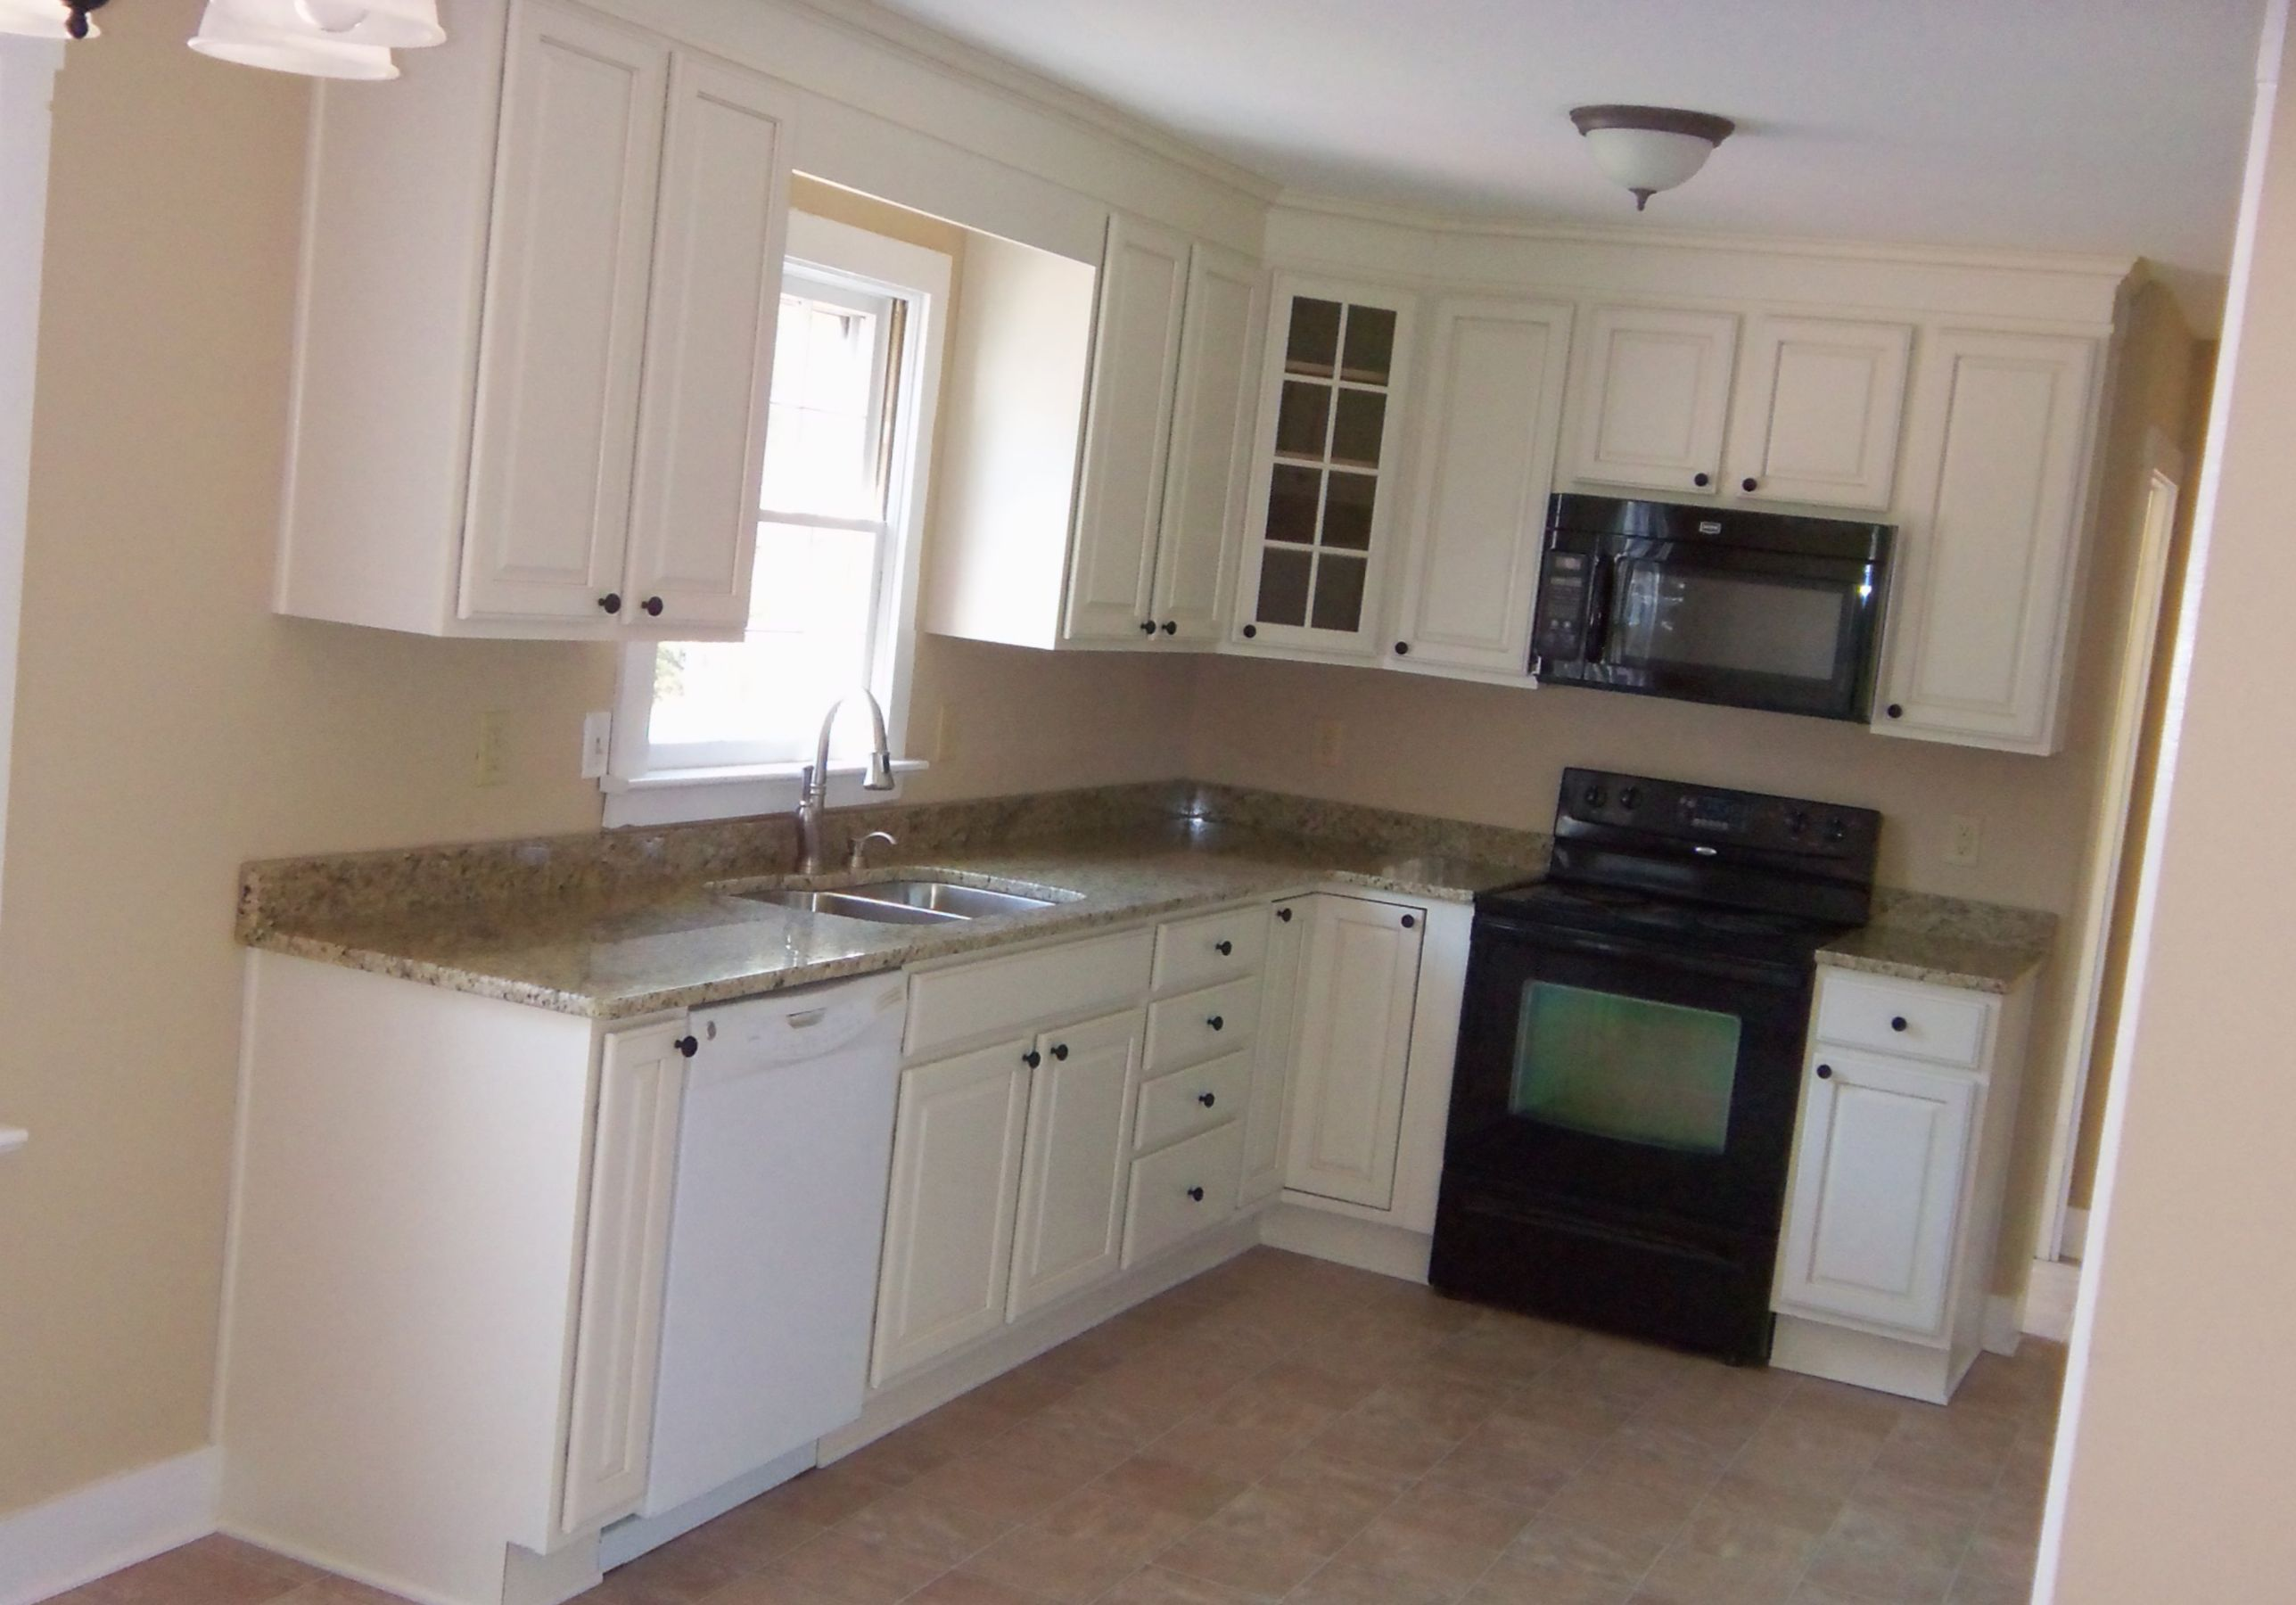 Kitchen Design Construct Small L Shaped Kitchen Designs Layouts L Shaped Kitchen Layout Idea Kitchen Design Small L Shape Kitchen Layout Kitchen Designs Layout